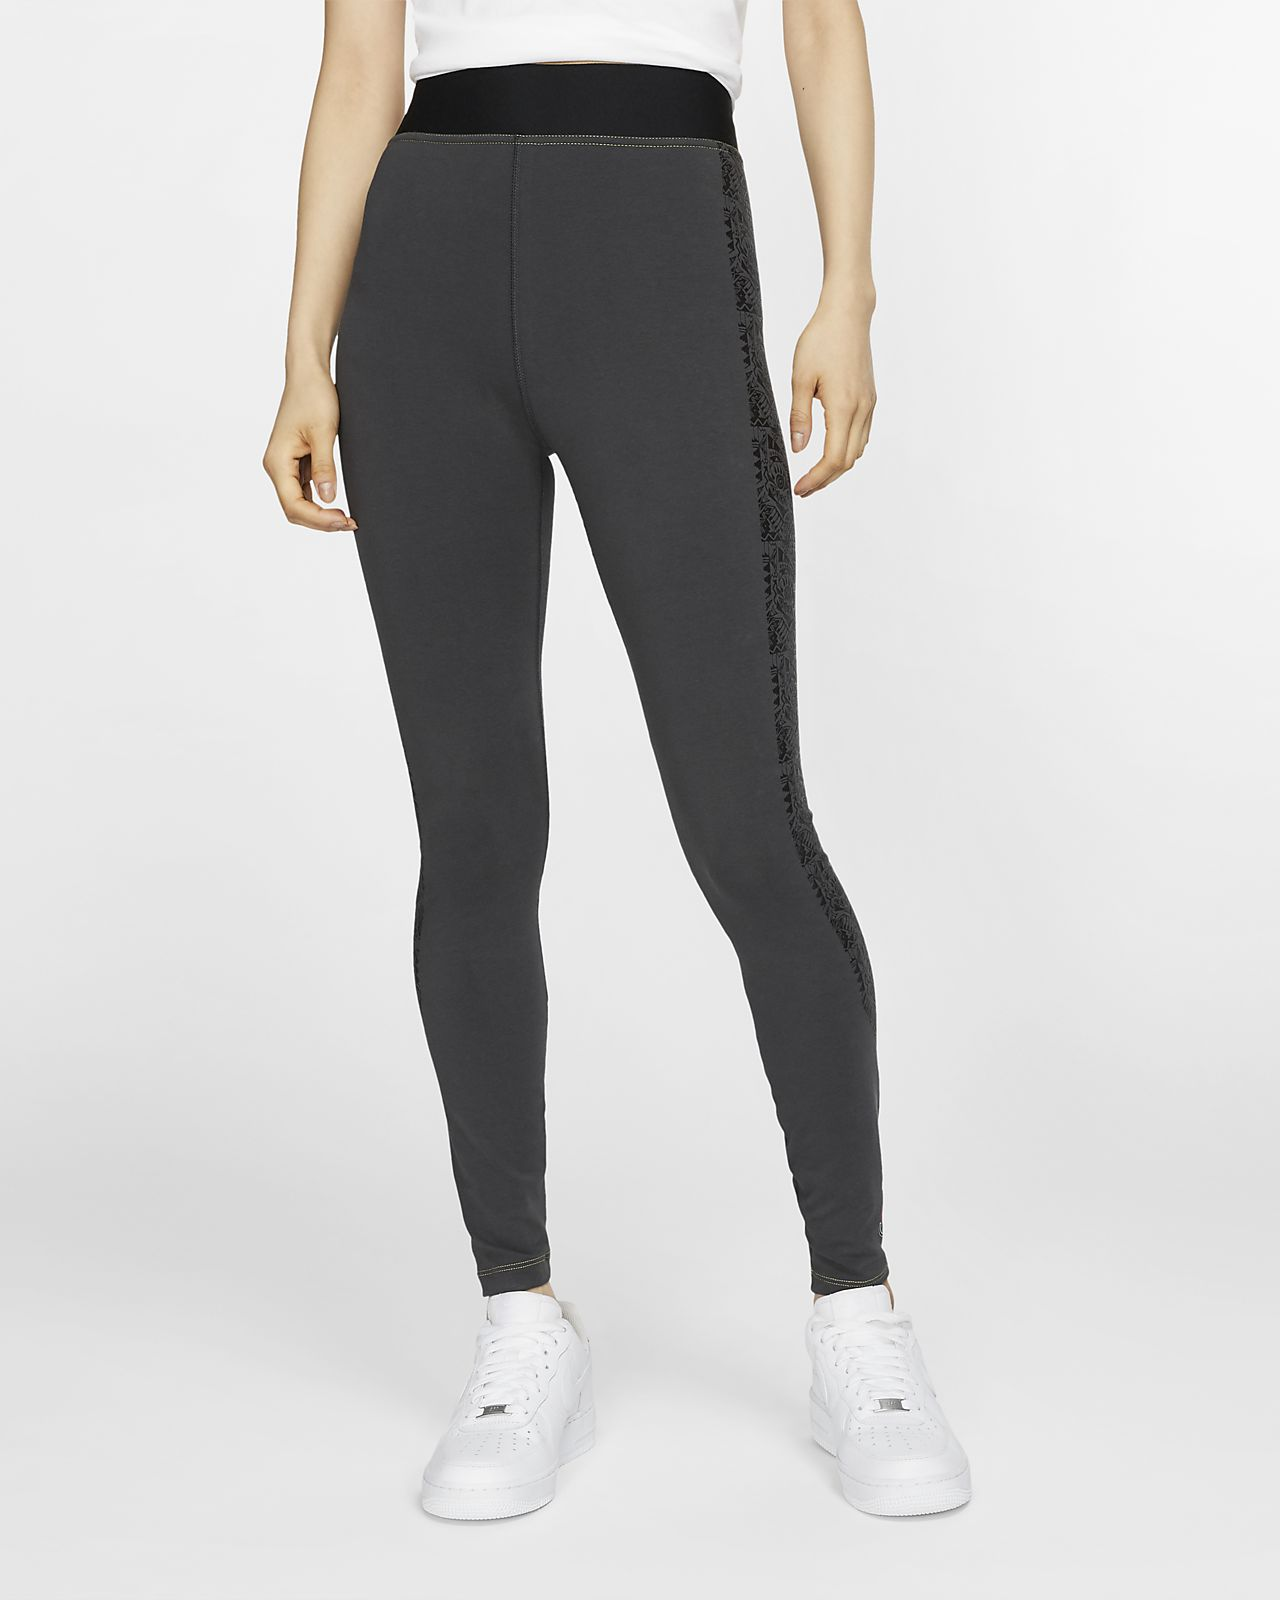 Nike Sportswear N7 Leg-A-See Women's High-Waisted Tights